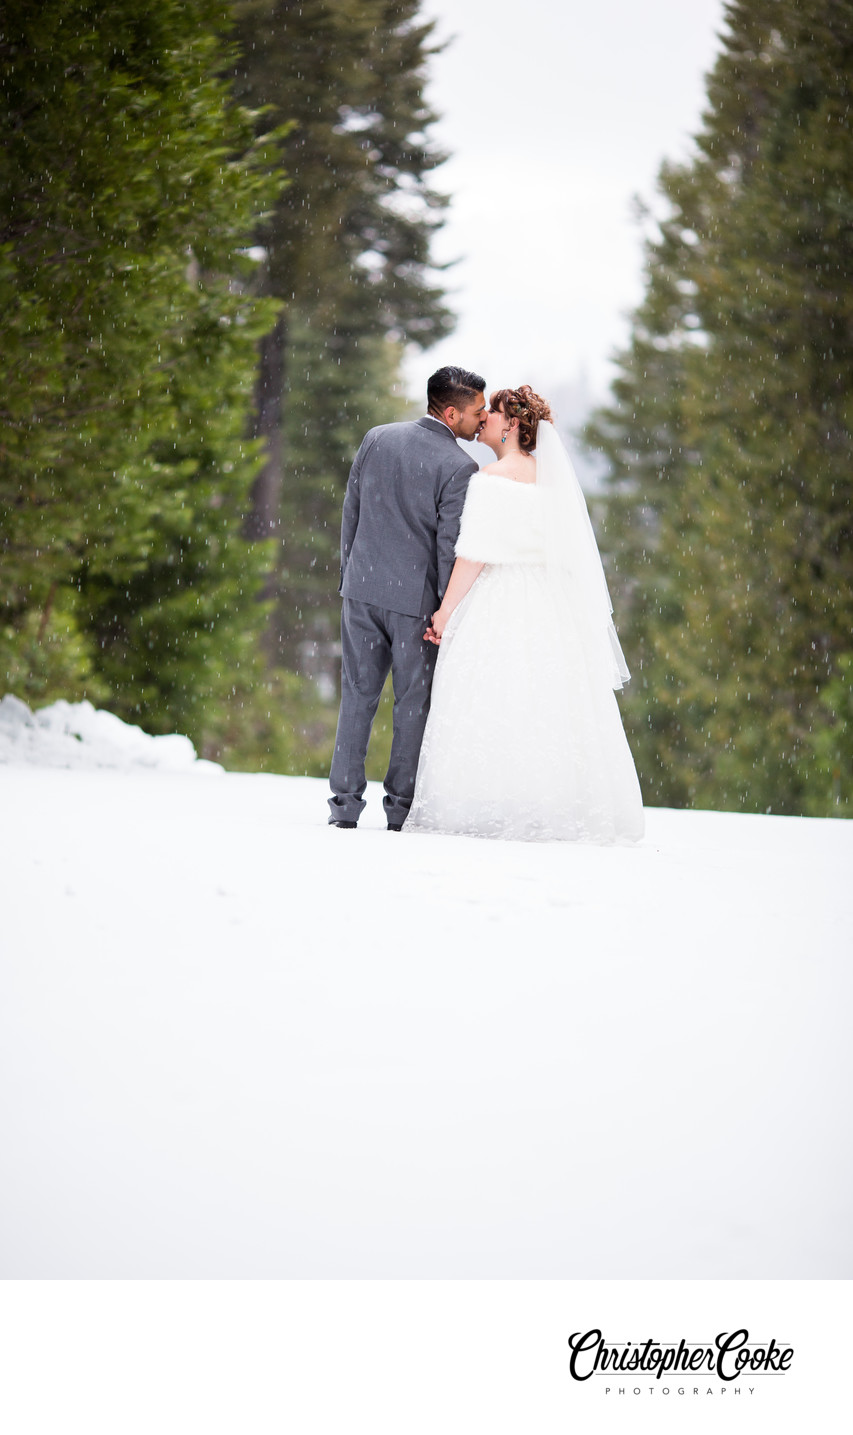 yosemite wedding photographer wedding in snow